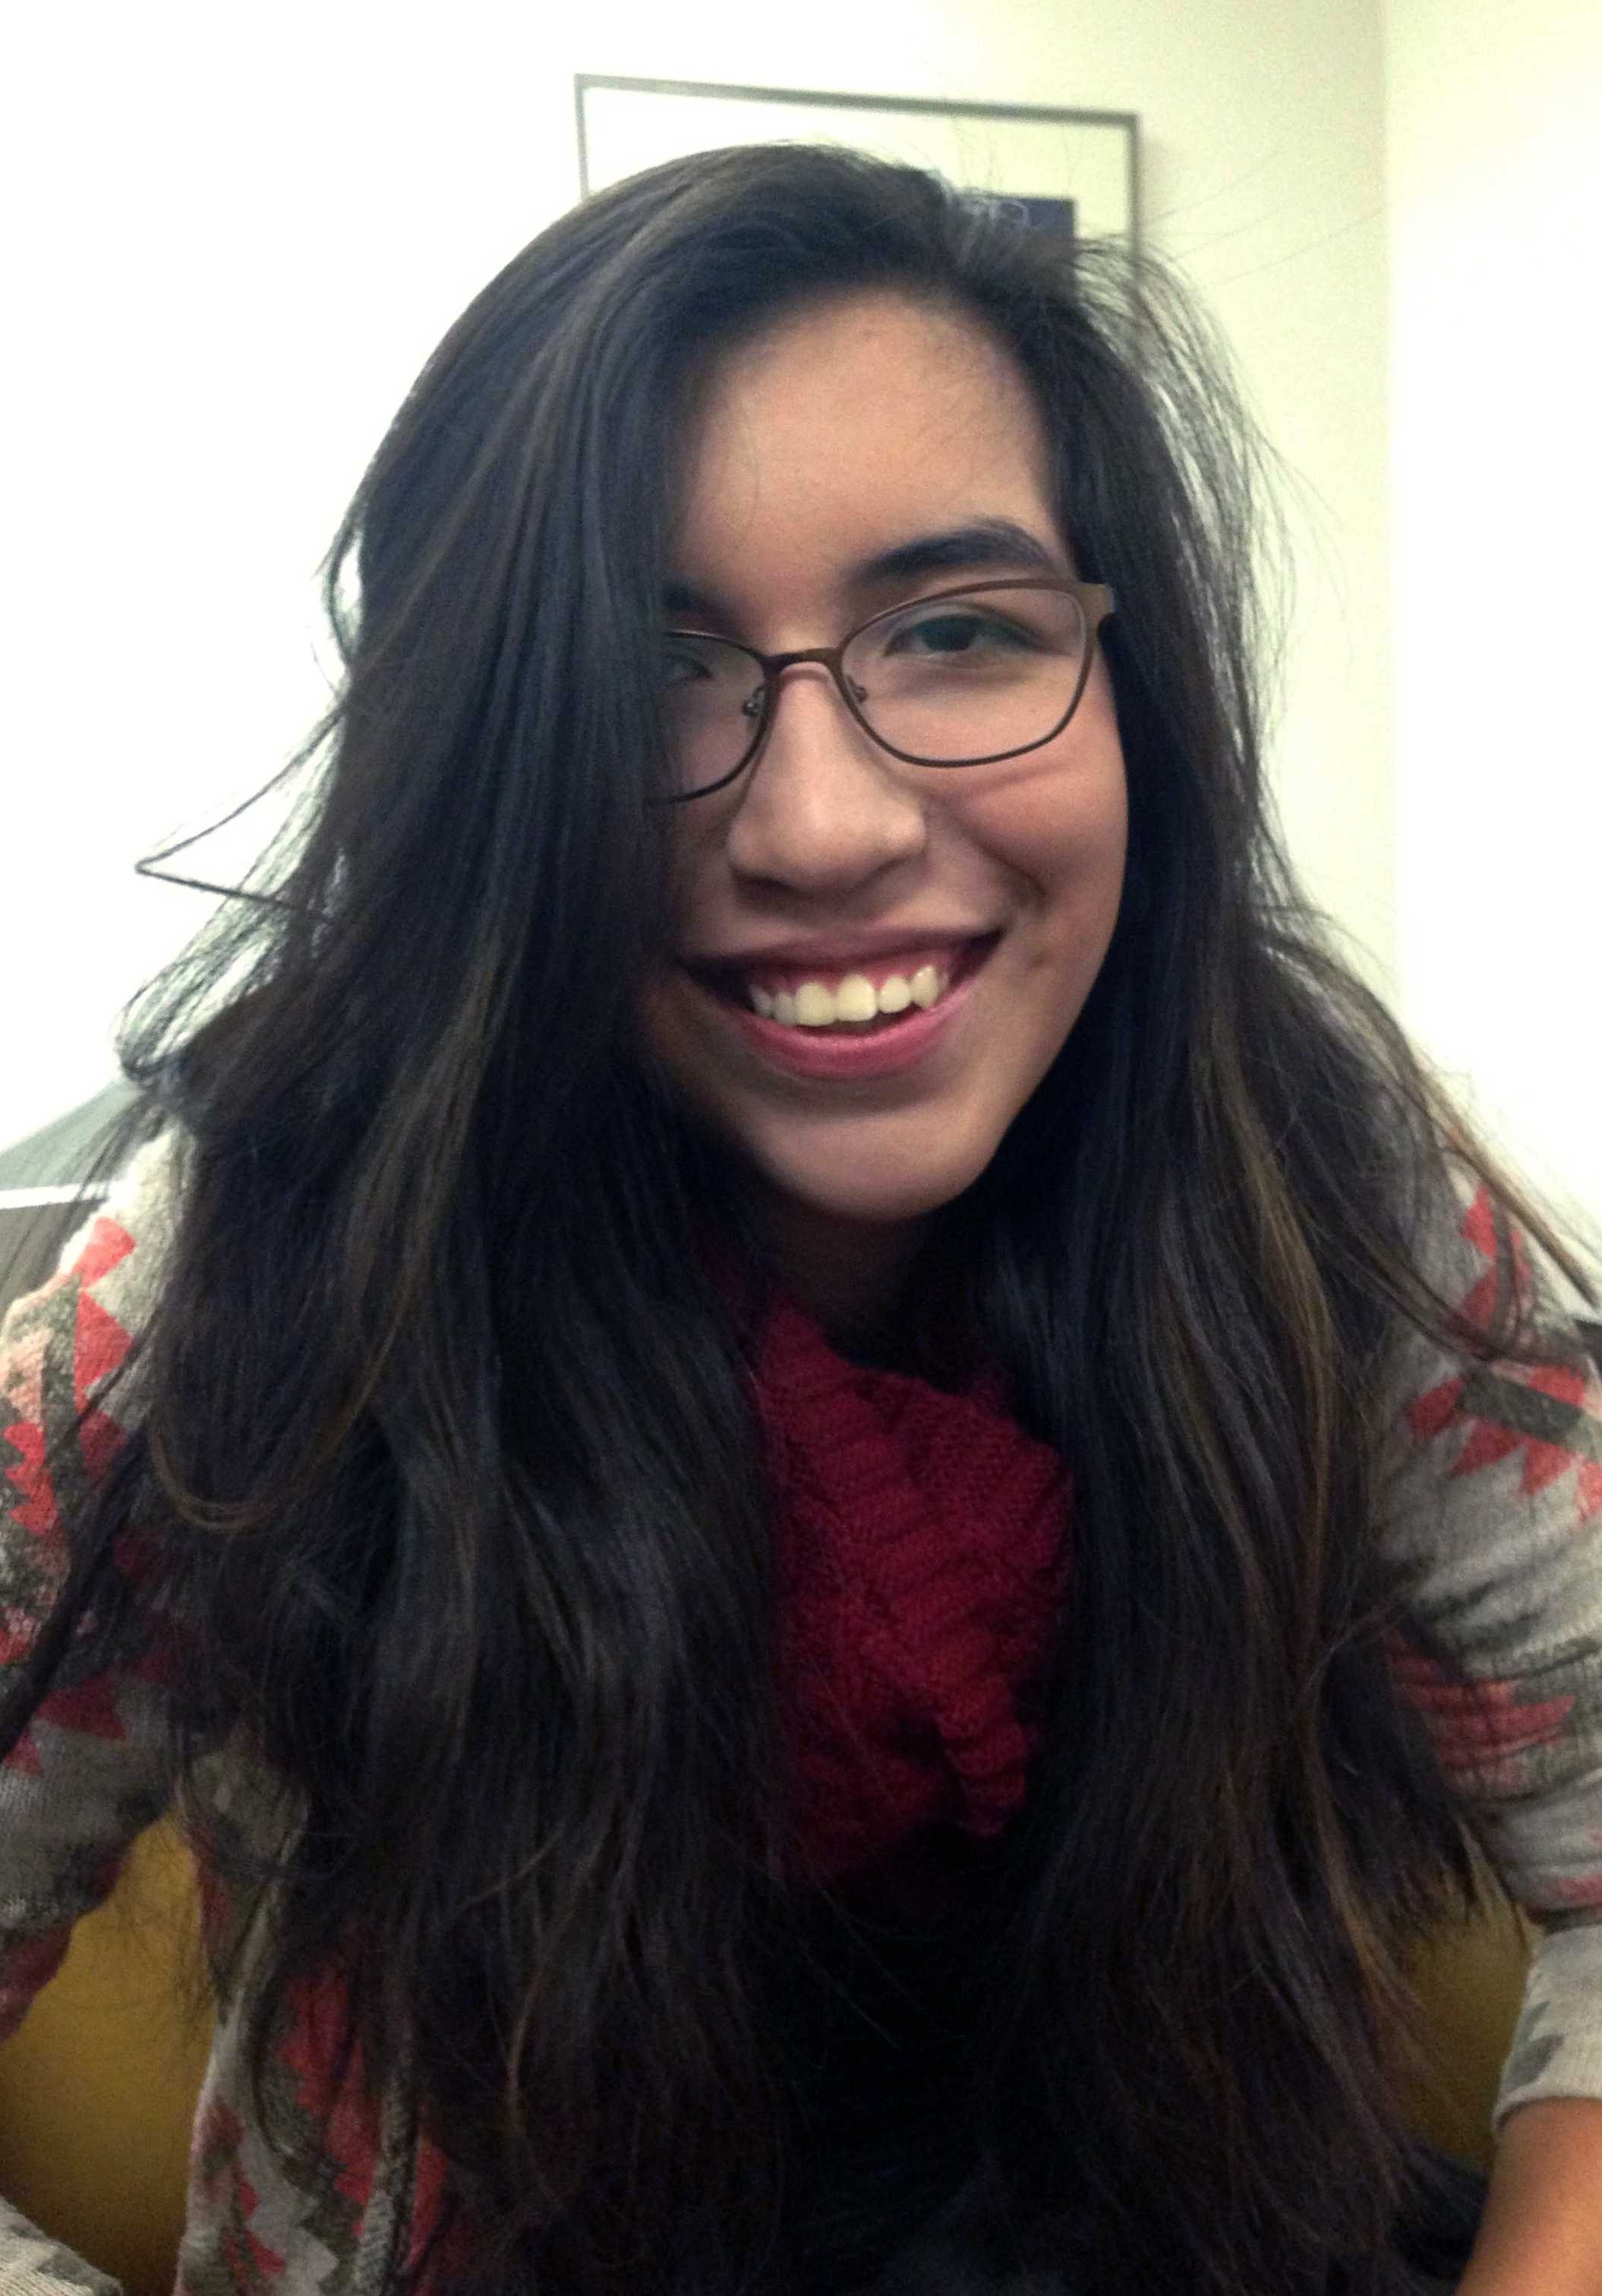 U film & media arts student, Karem Orrego, Founder of Crisol Film Initiative